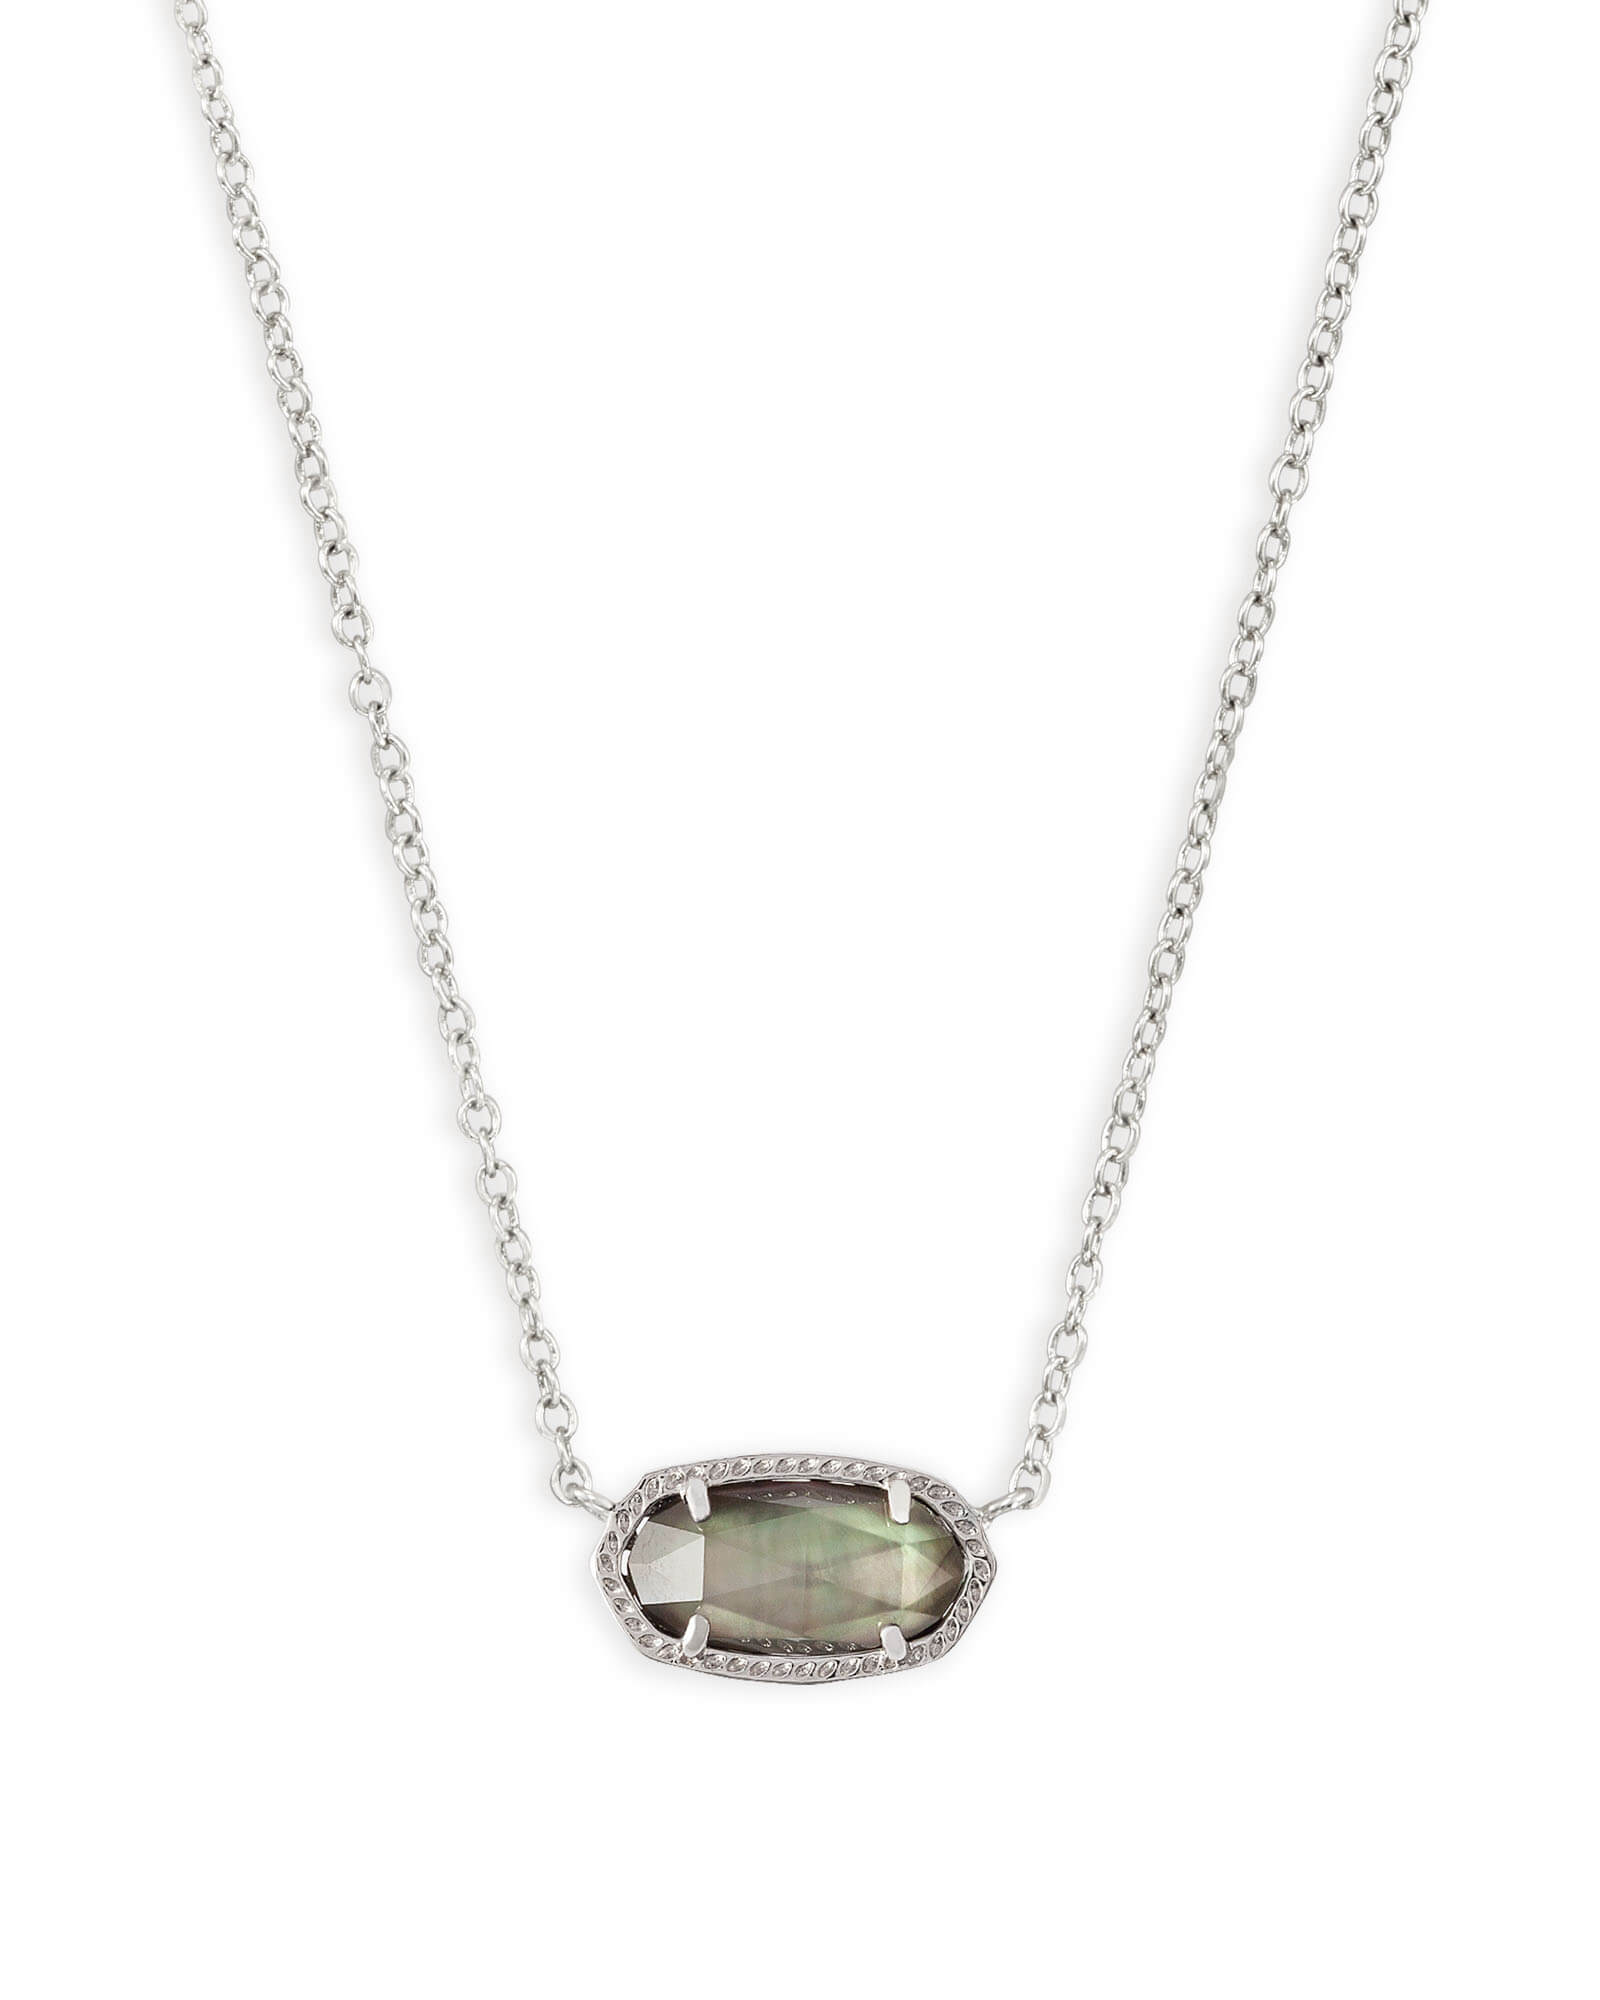 Elisa Silver Pendant Necklace in Black Mother of Pearl